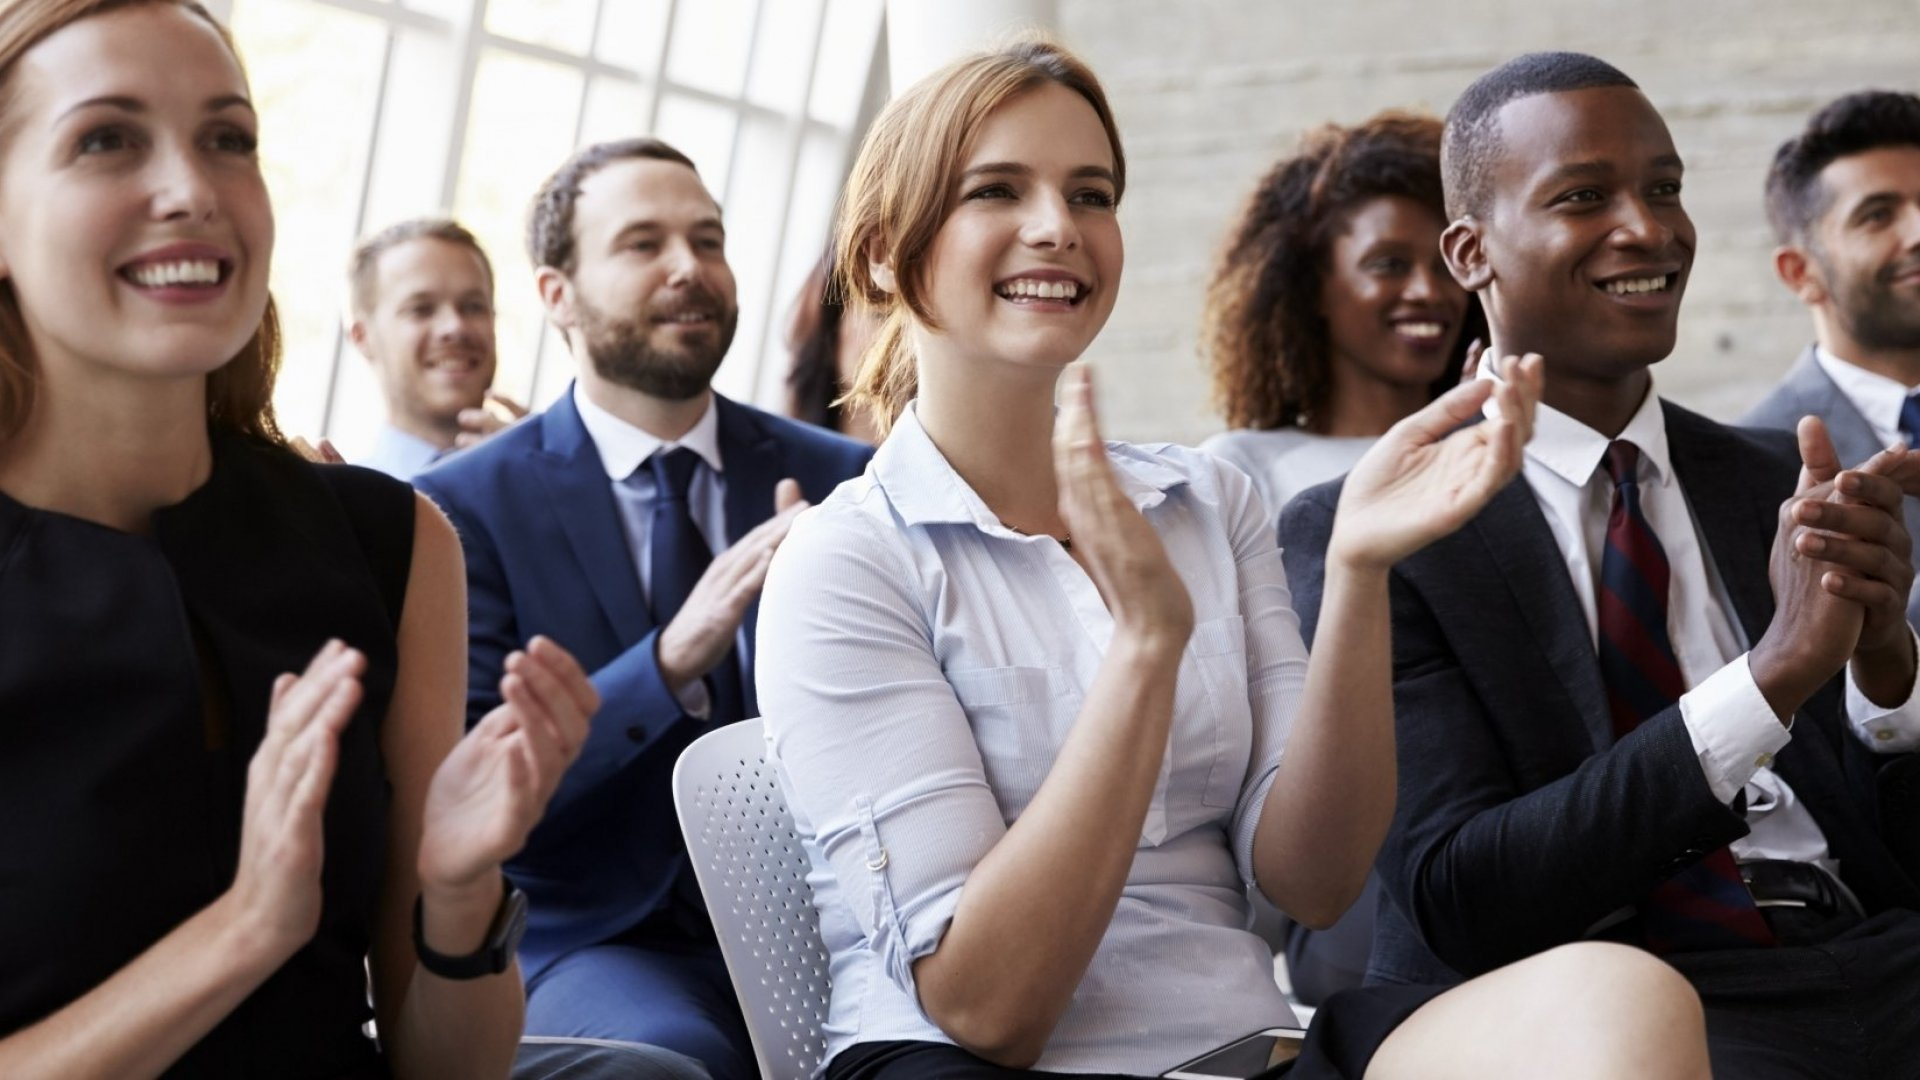 Want to Be a Thought Leader? Here's How to Stand Out and Be Noticed